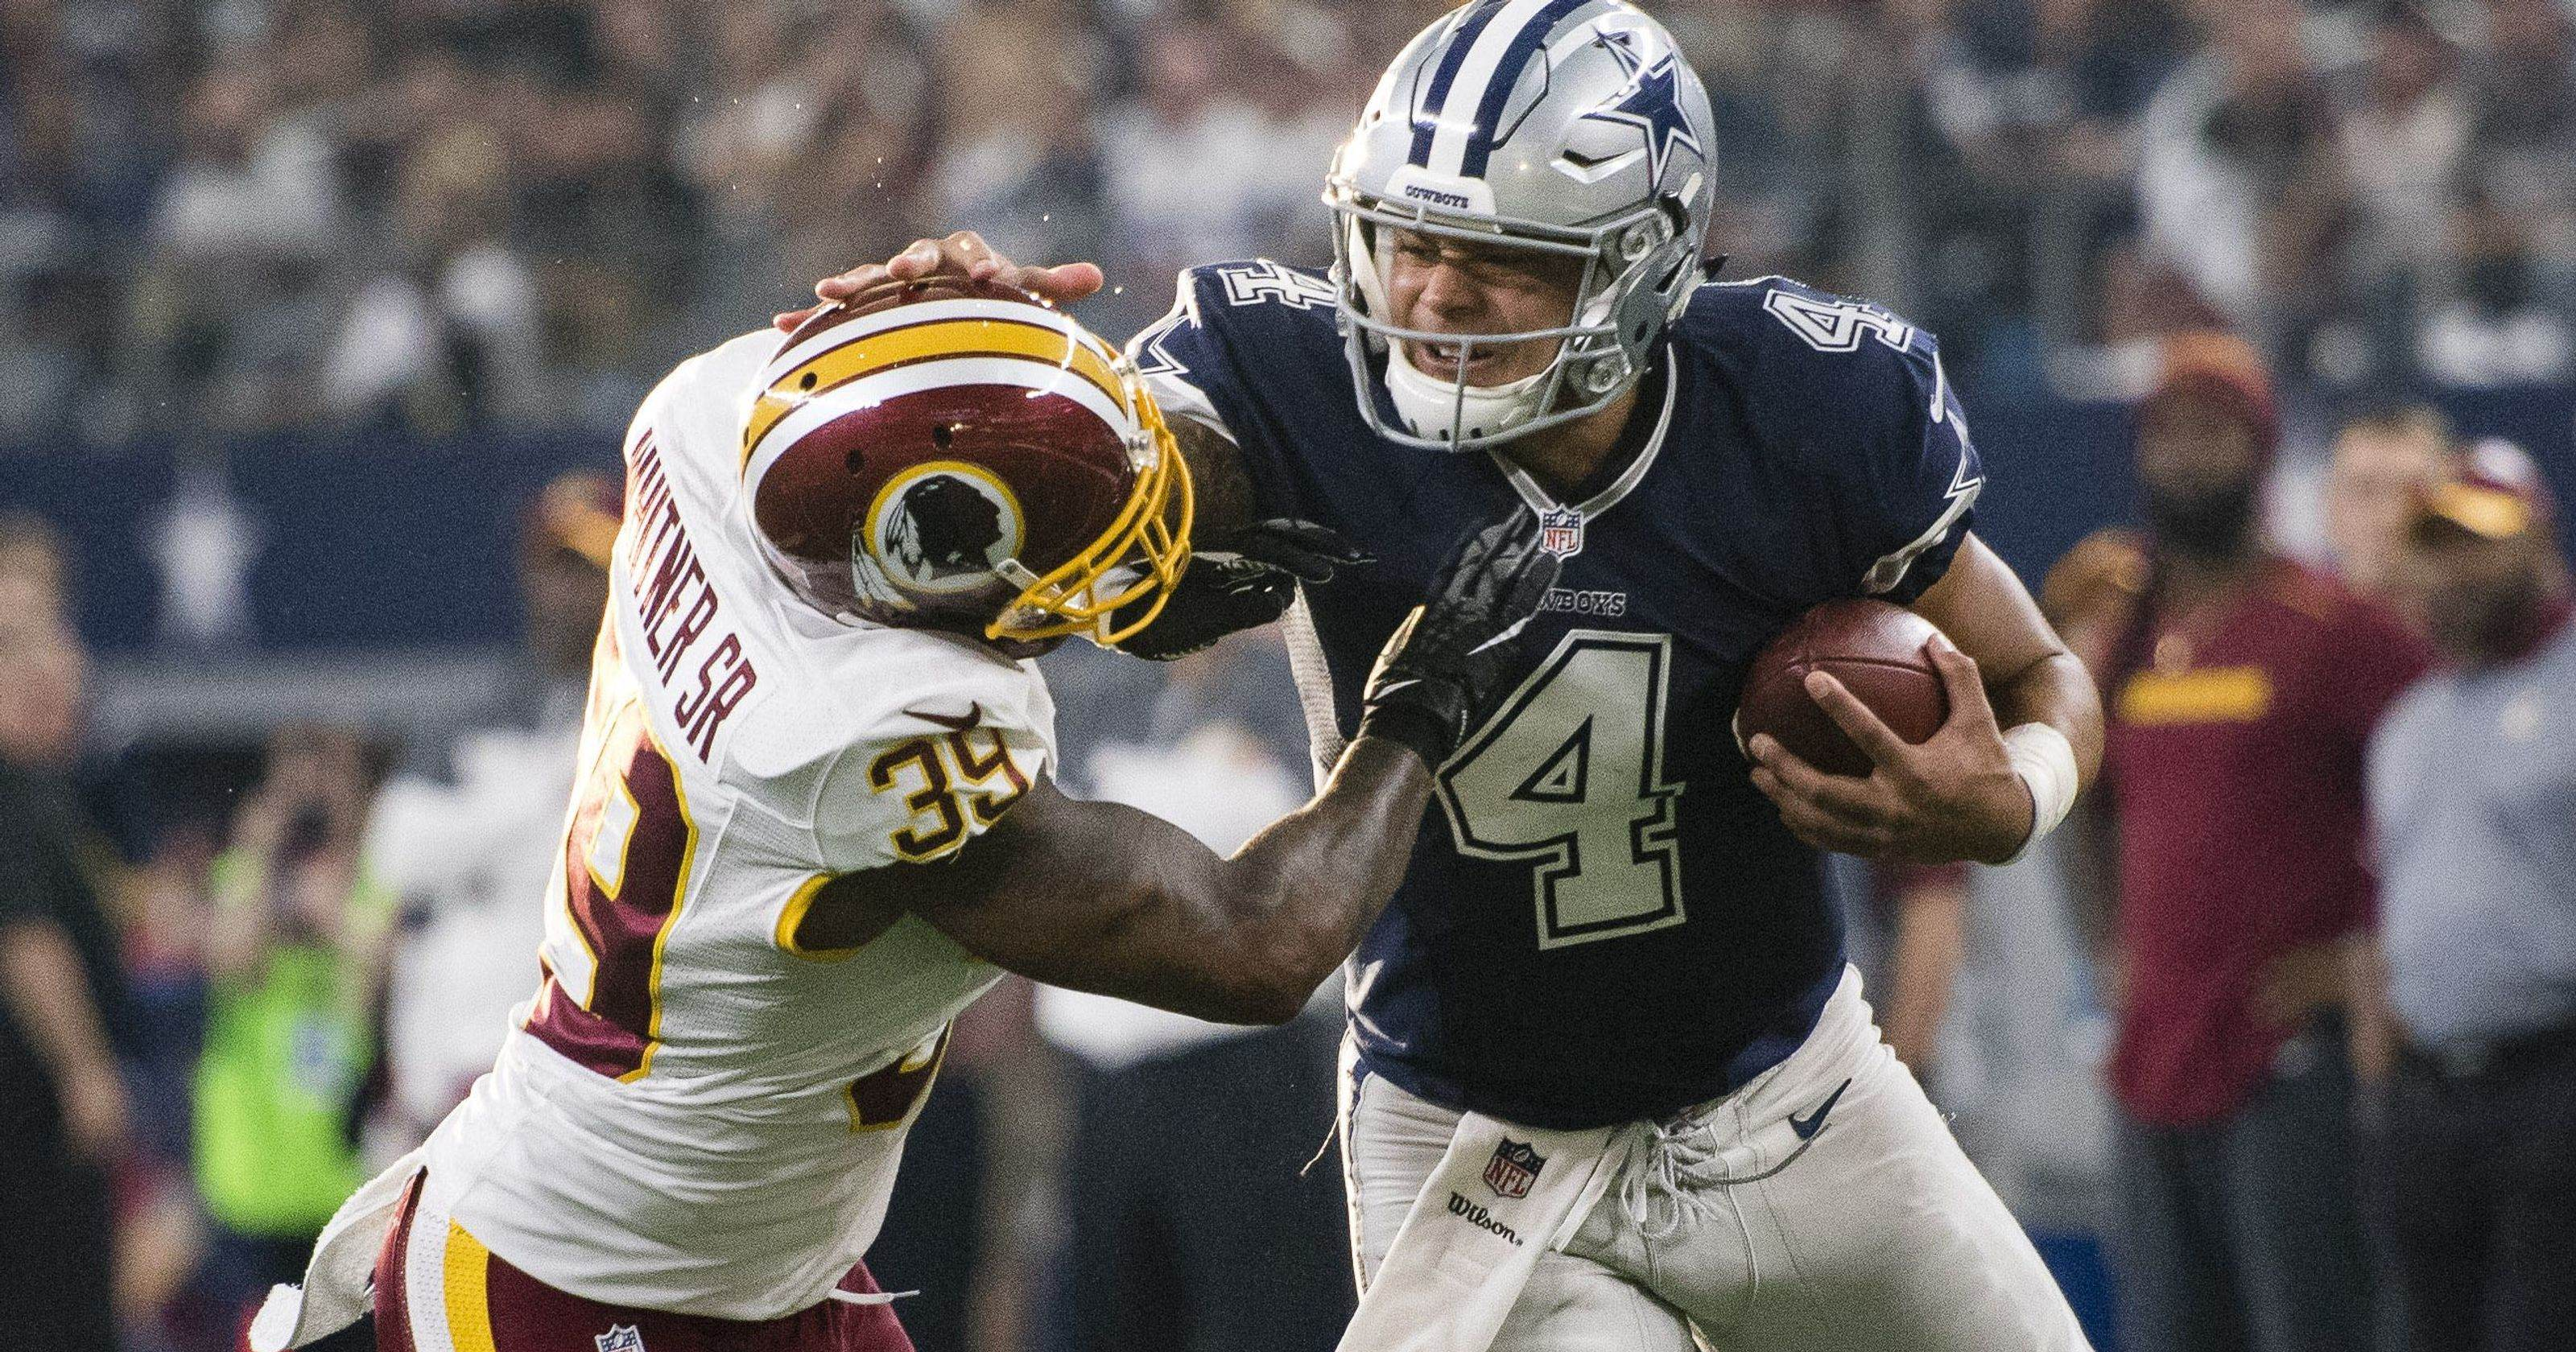 Cowboys to visit African American history museum after Redskins game